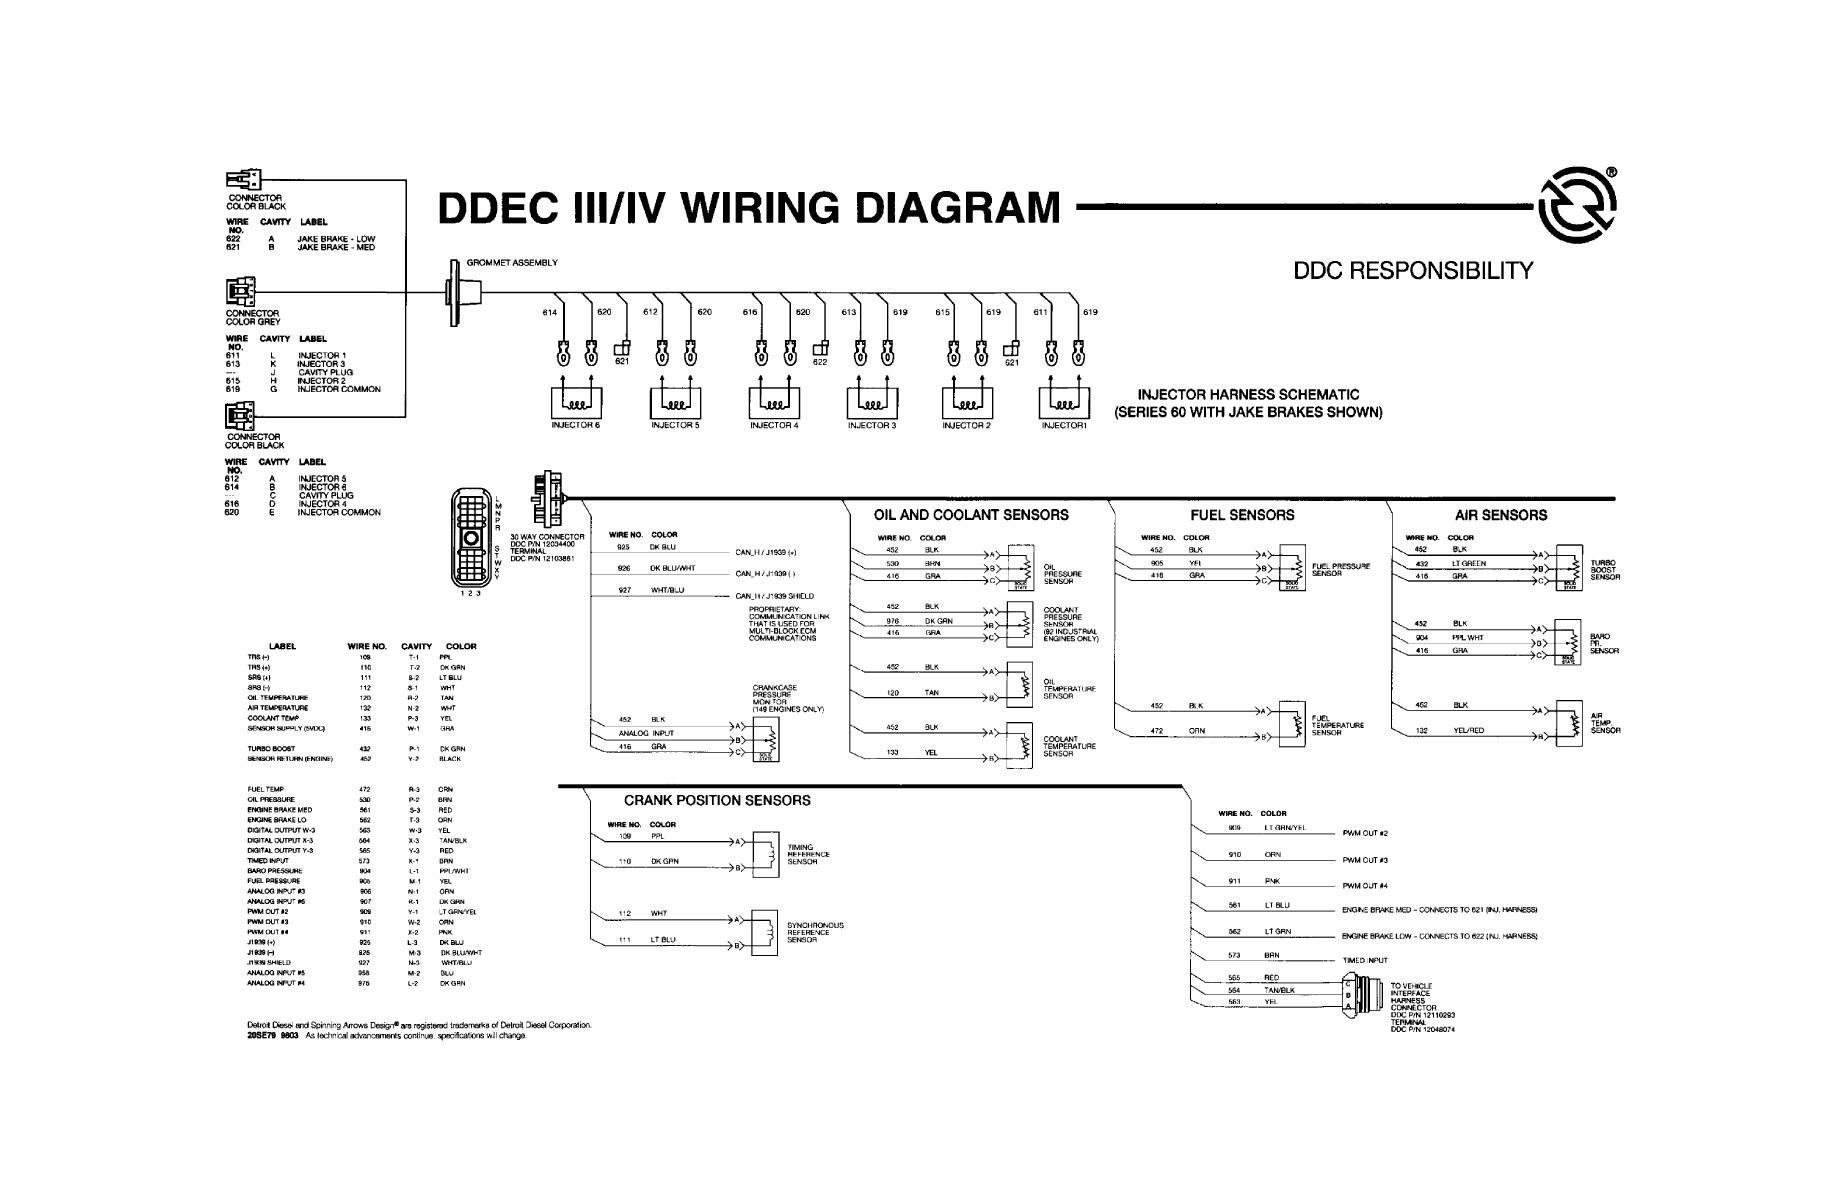 Ddec 5 Ecm Wiring Diagram Free Picture Libraries 4 J1939 Iv Guide And Troubleshooting Of U2022detroit Ii